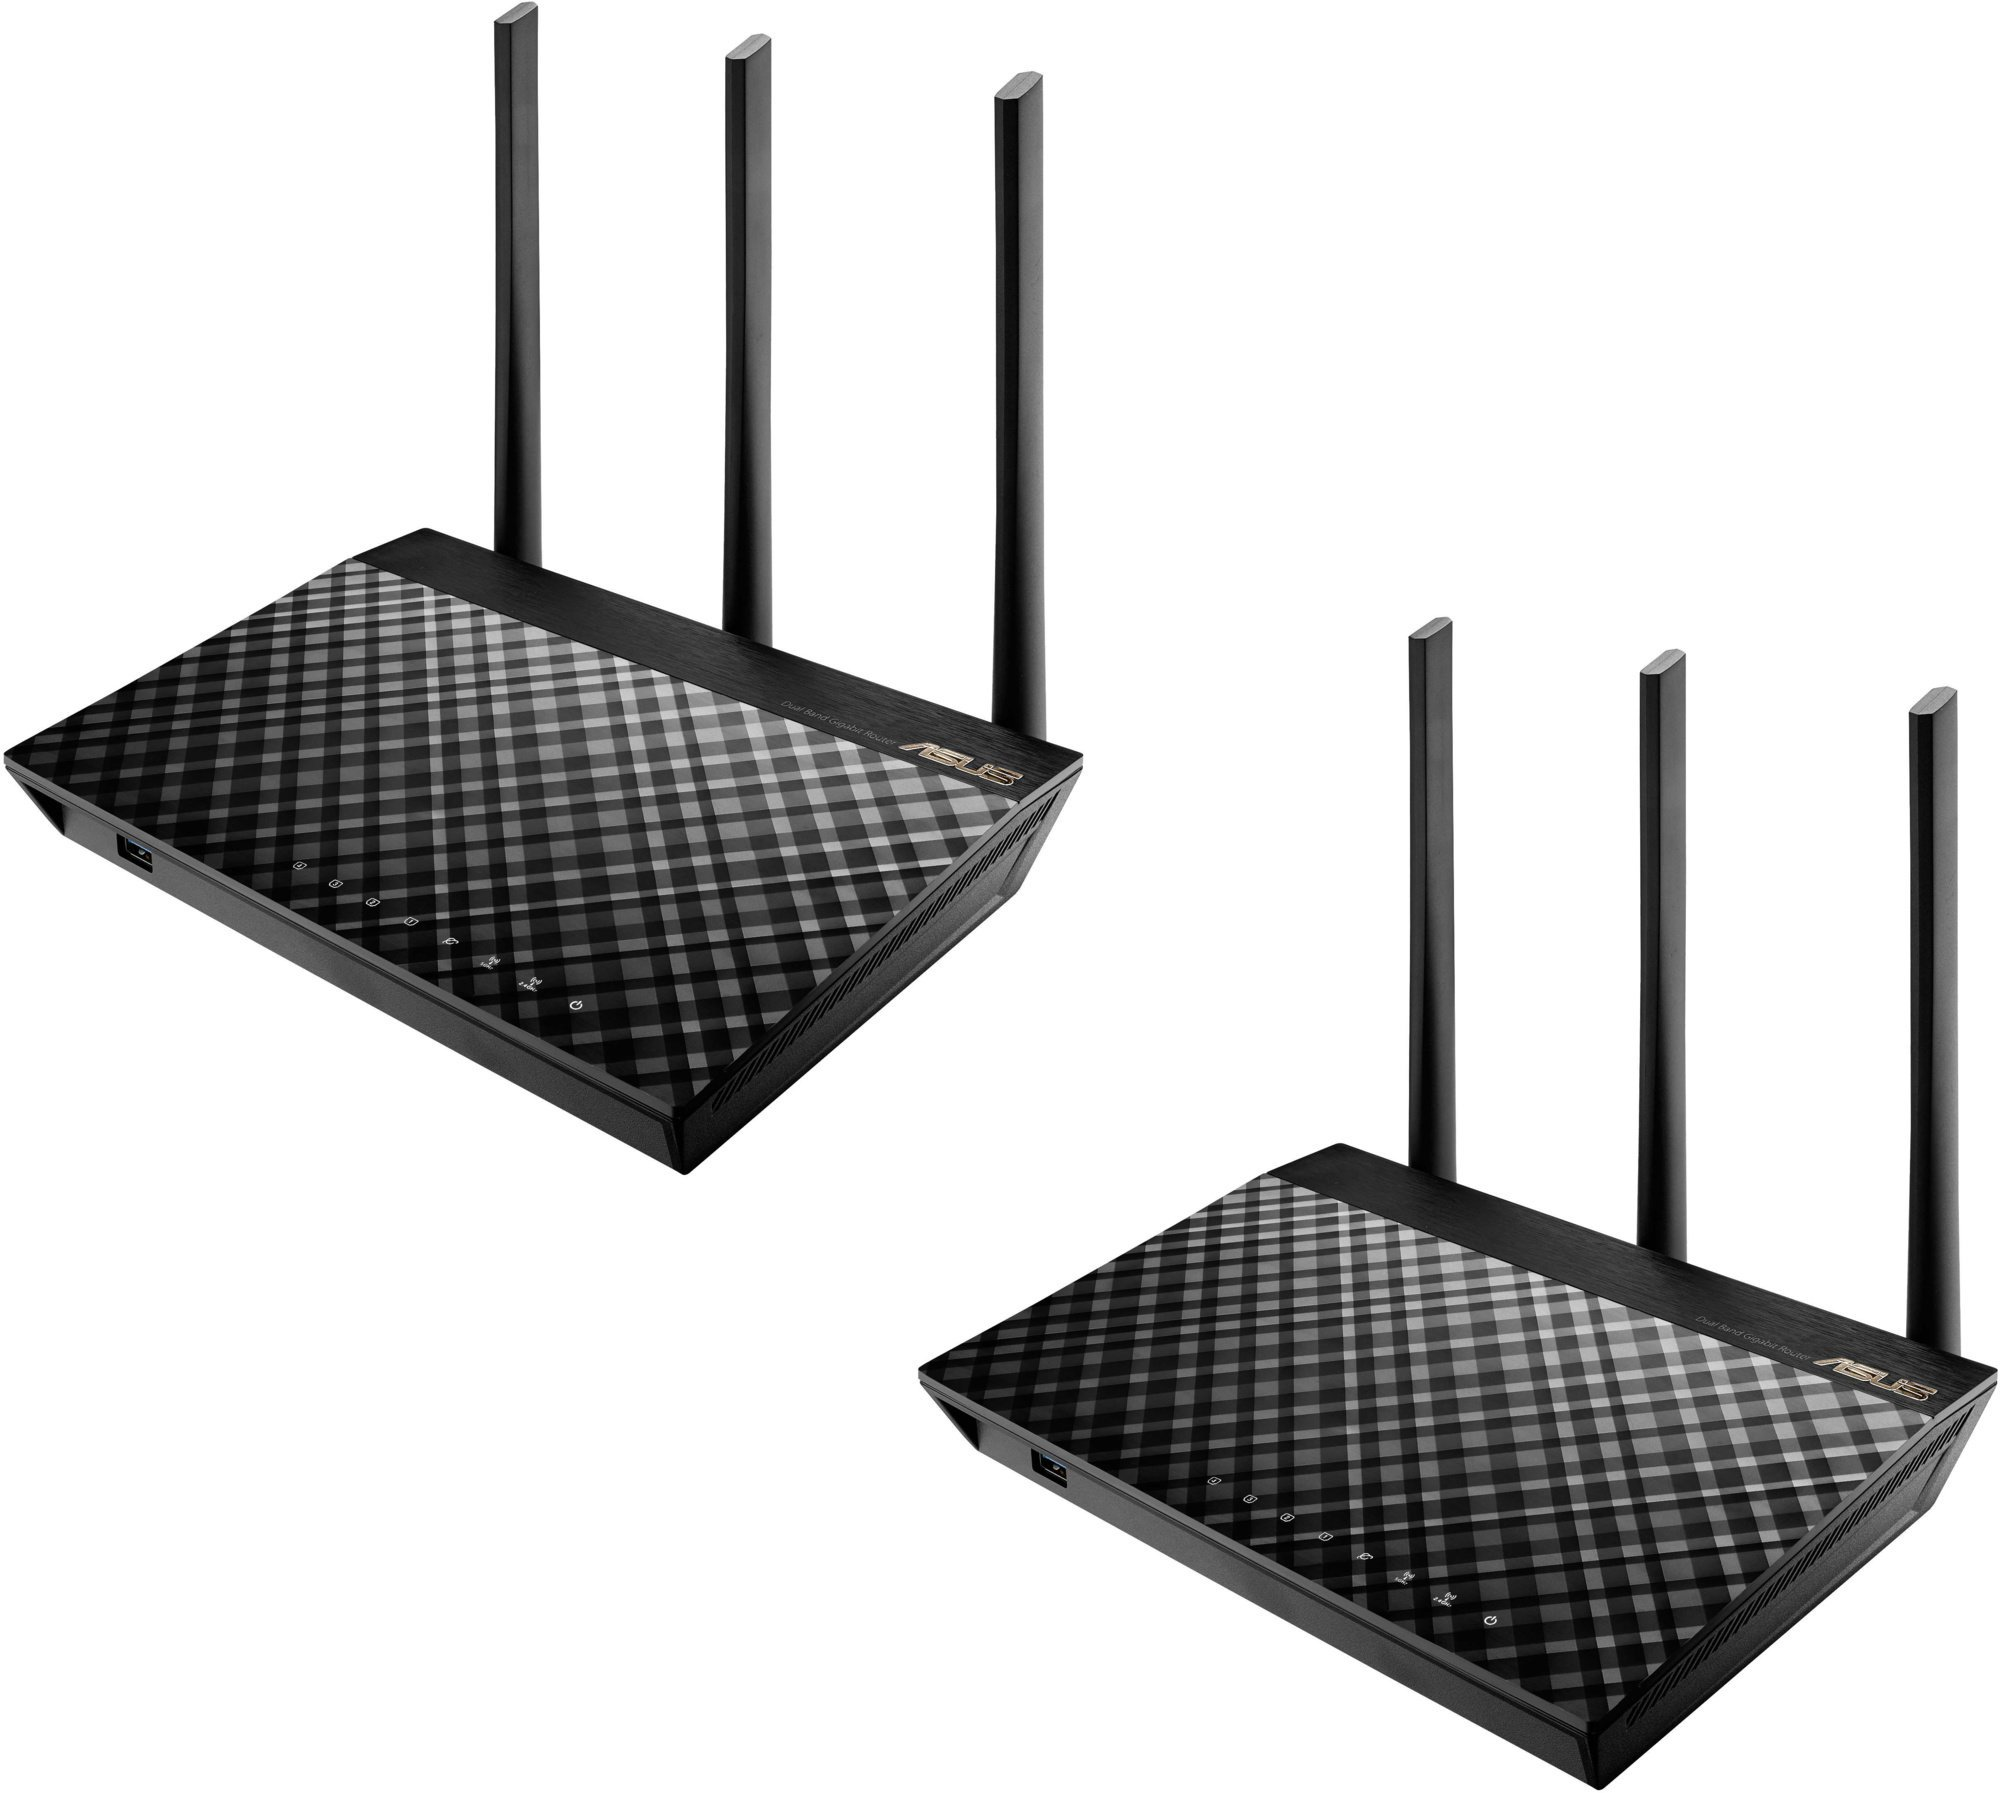 ASUS Wireless AC1900 Gigabit Dual-Band Router RT-AC67U (2-PK)